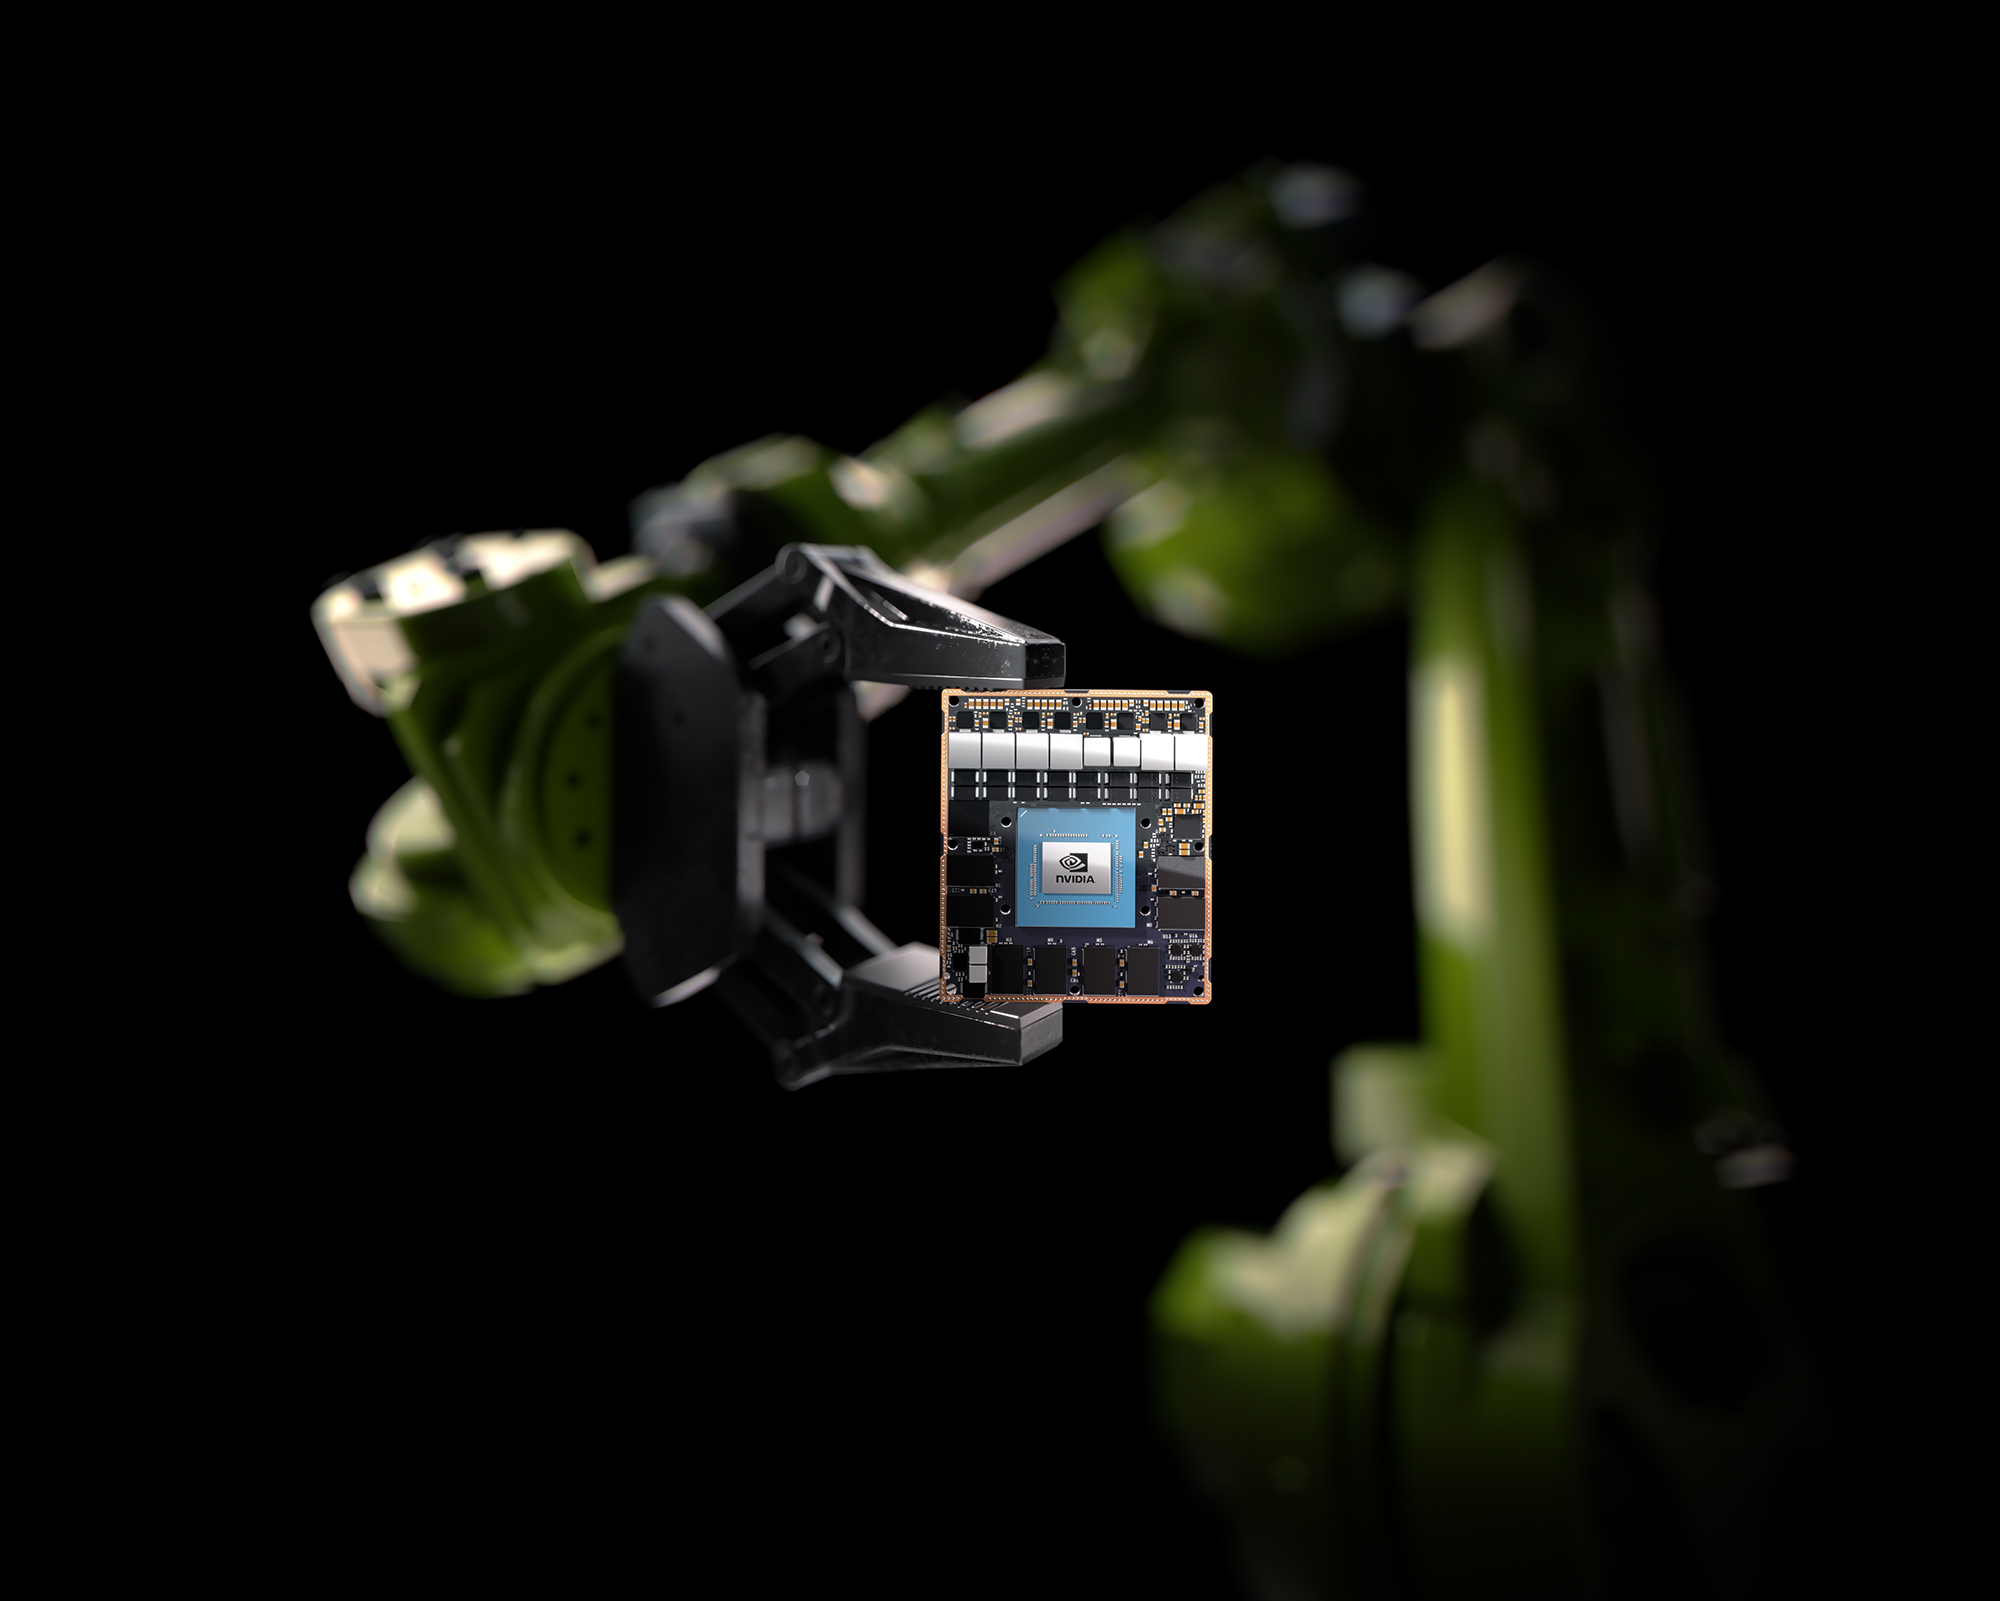 Nvidia ships miniaturized Jetson AGX Xavier machine learning chip for robots